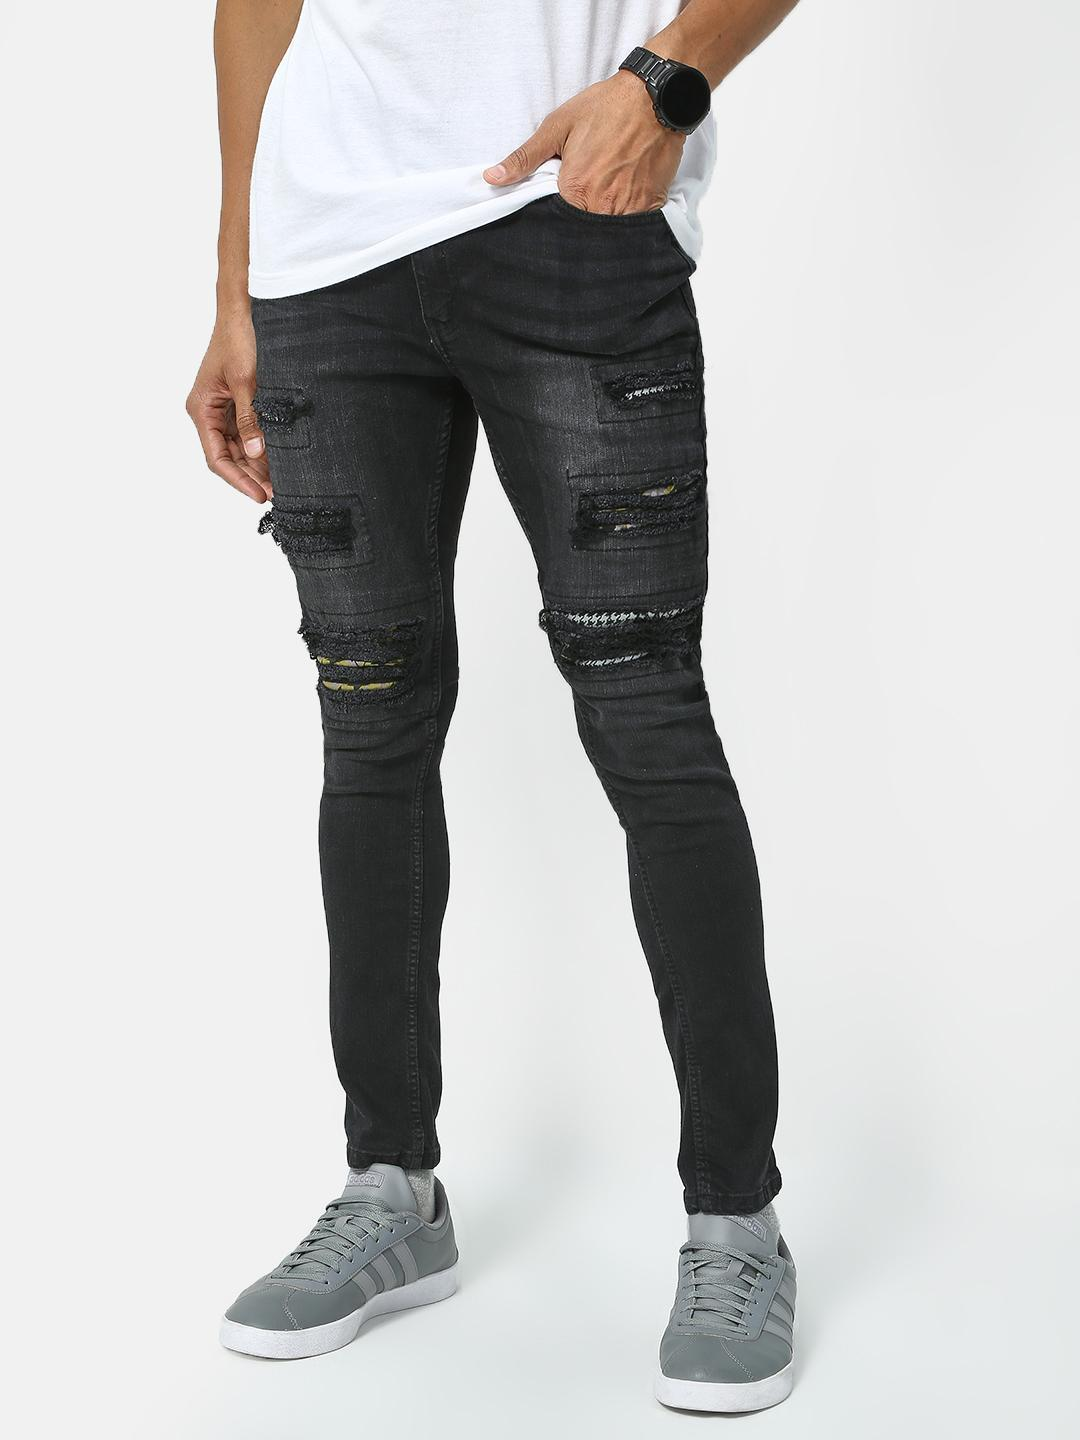 IMPACKT Black Ripped Patch Distressed Jeans 1